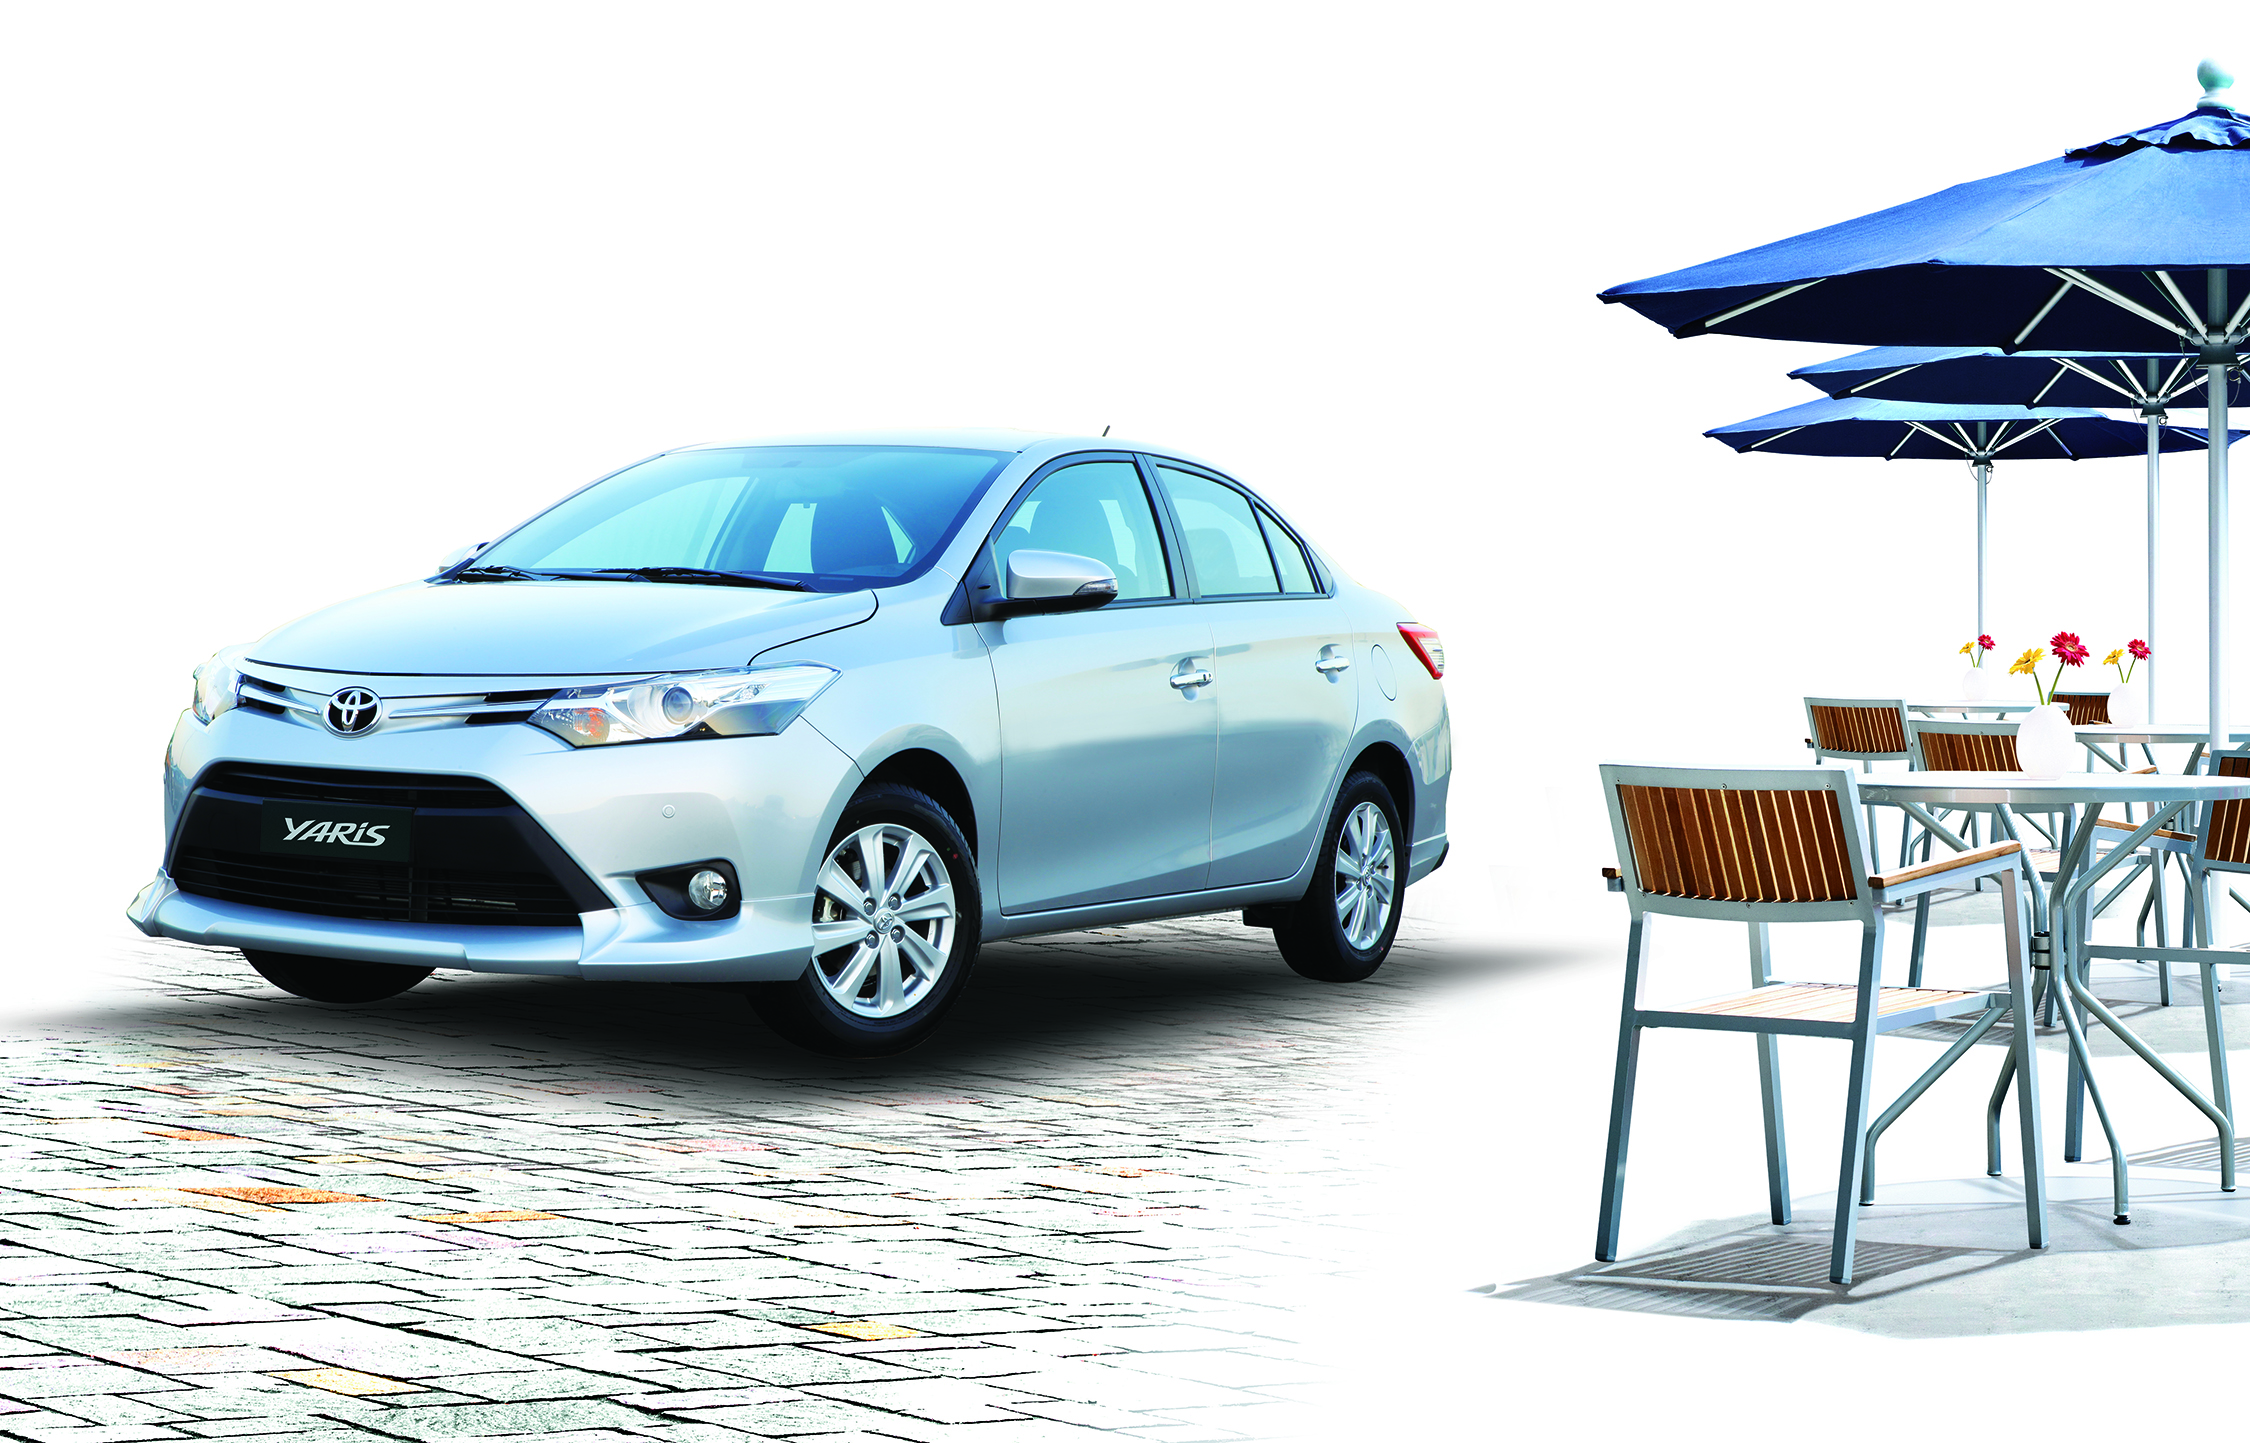 Toyota Yaris Limited now comes with attractive benefits